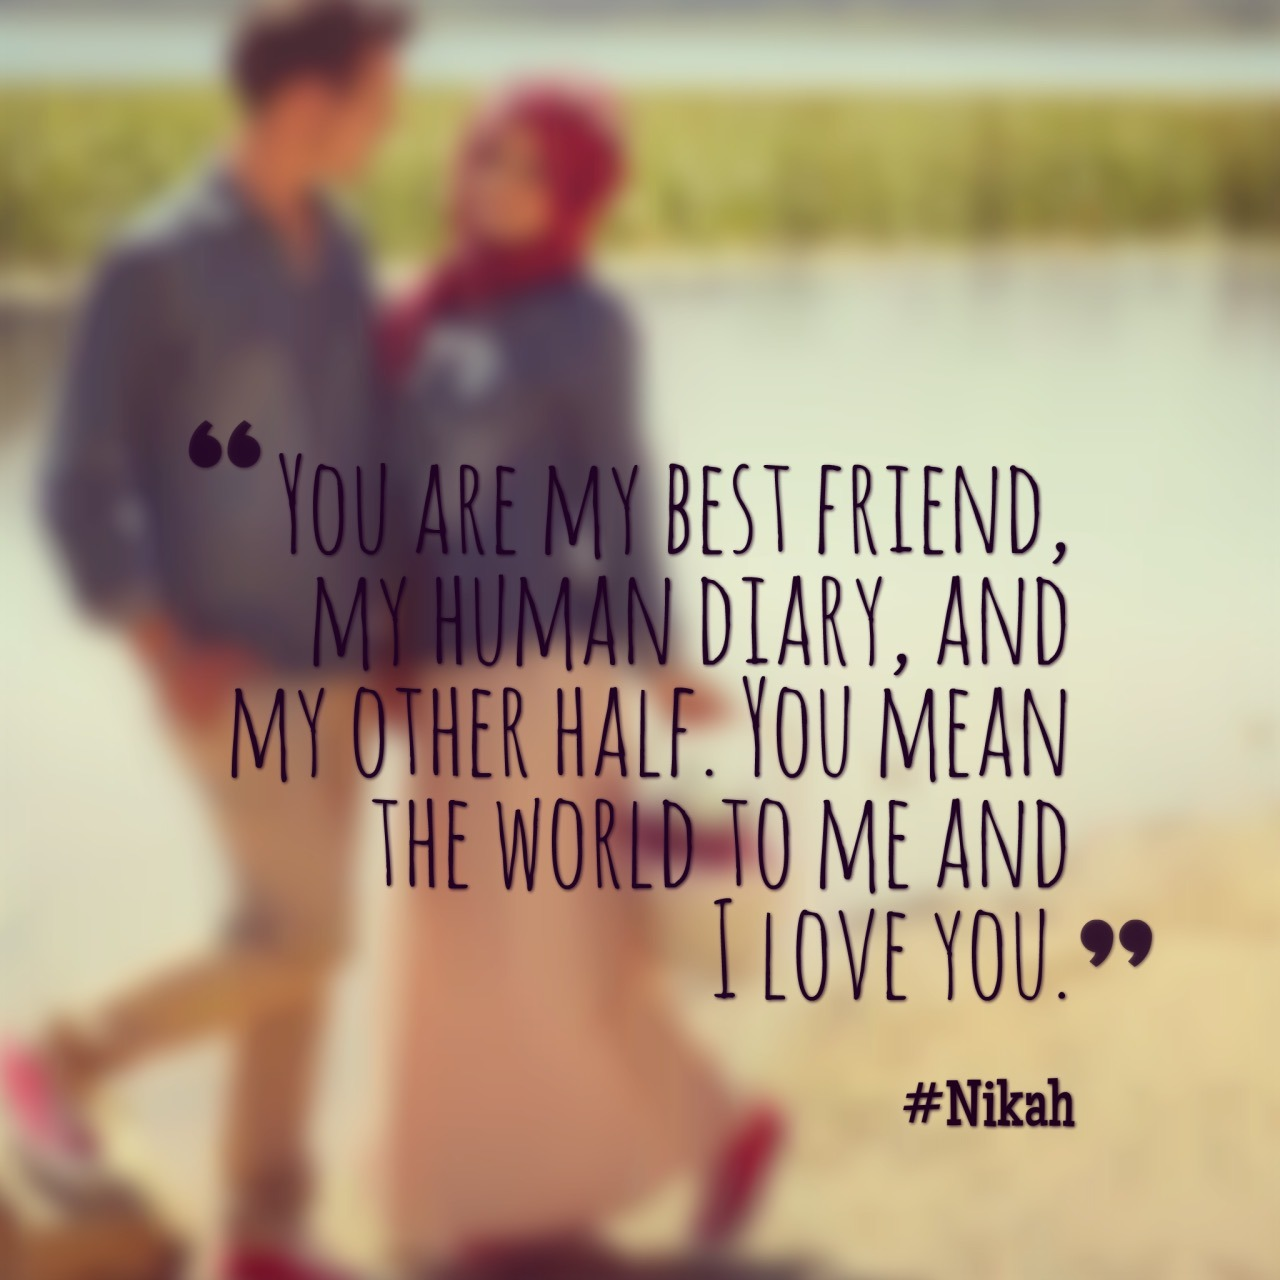 Cuteislamicmarriagequotes Marriage Husband Wife Husbandwife Islam Muslim Love Cute Quote Marriagequotes Islamicquotes Lovequotes Couplegoals